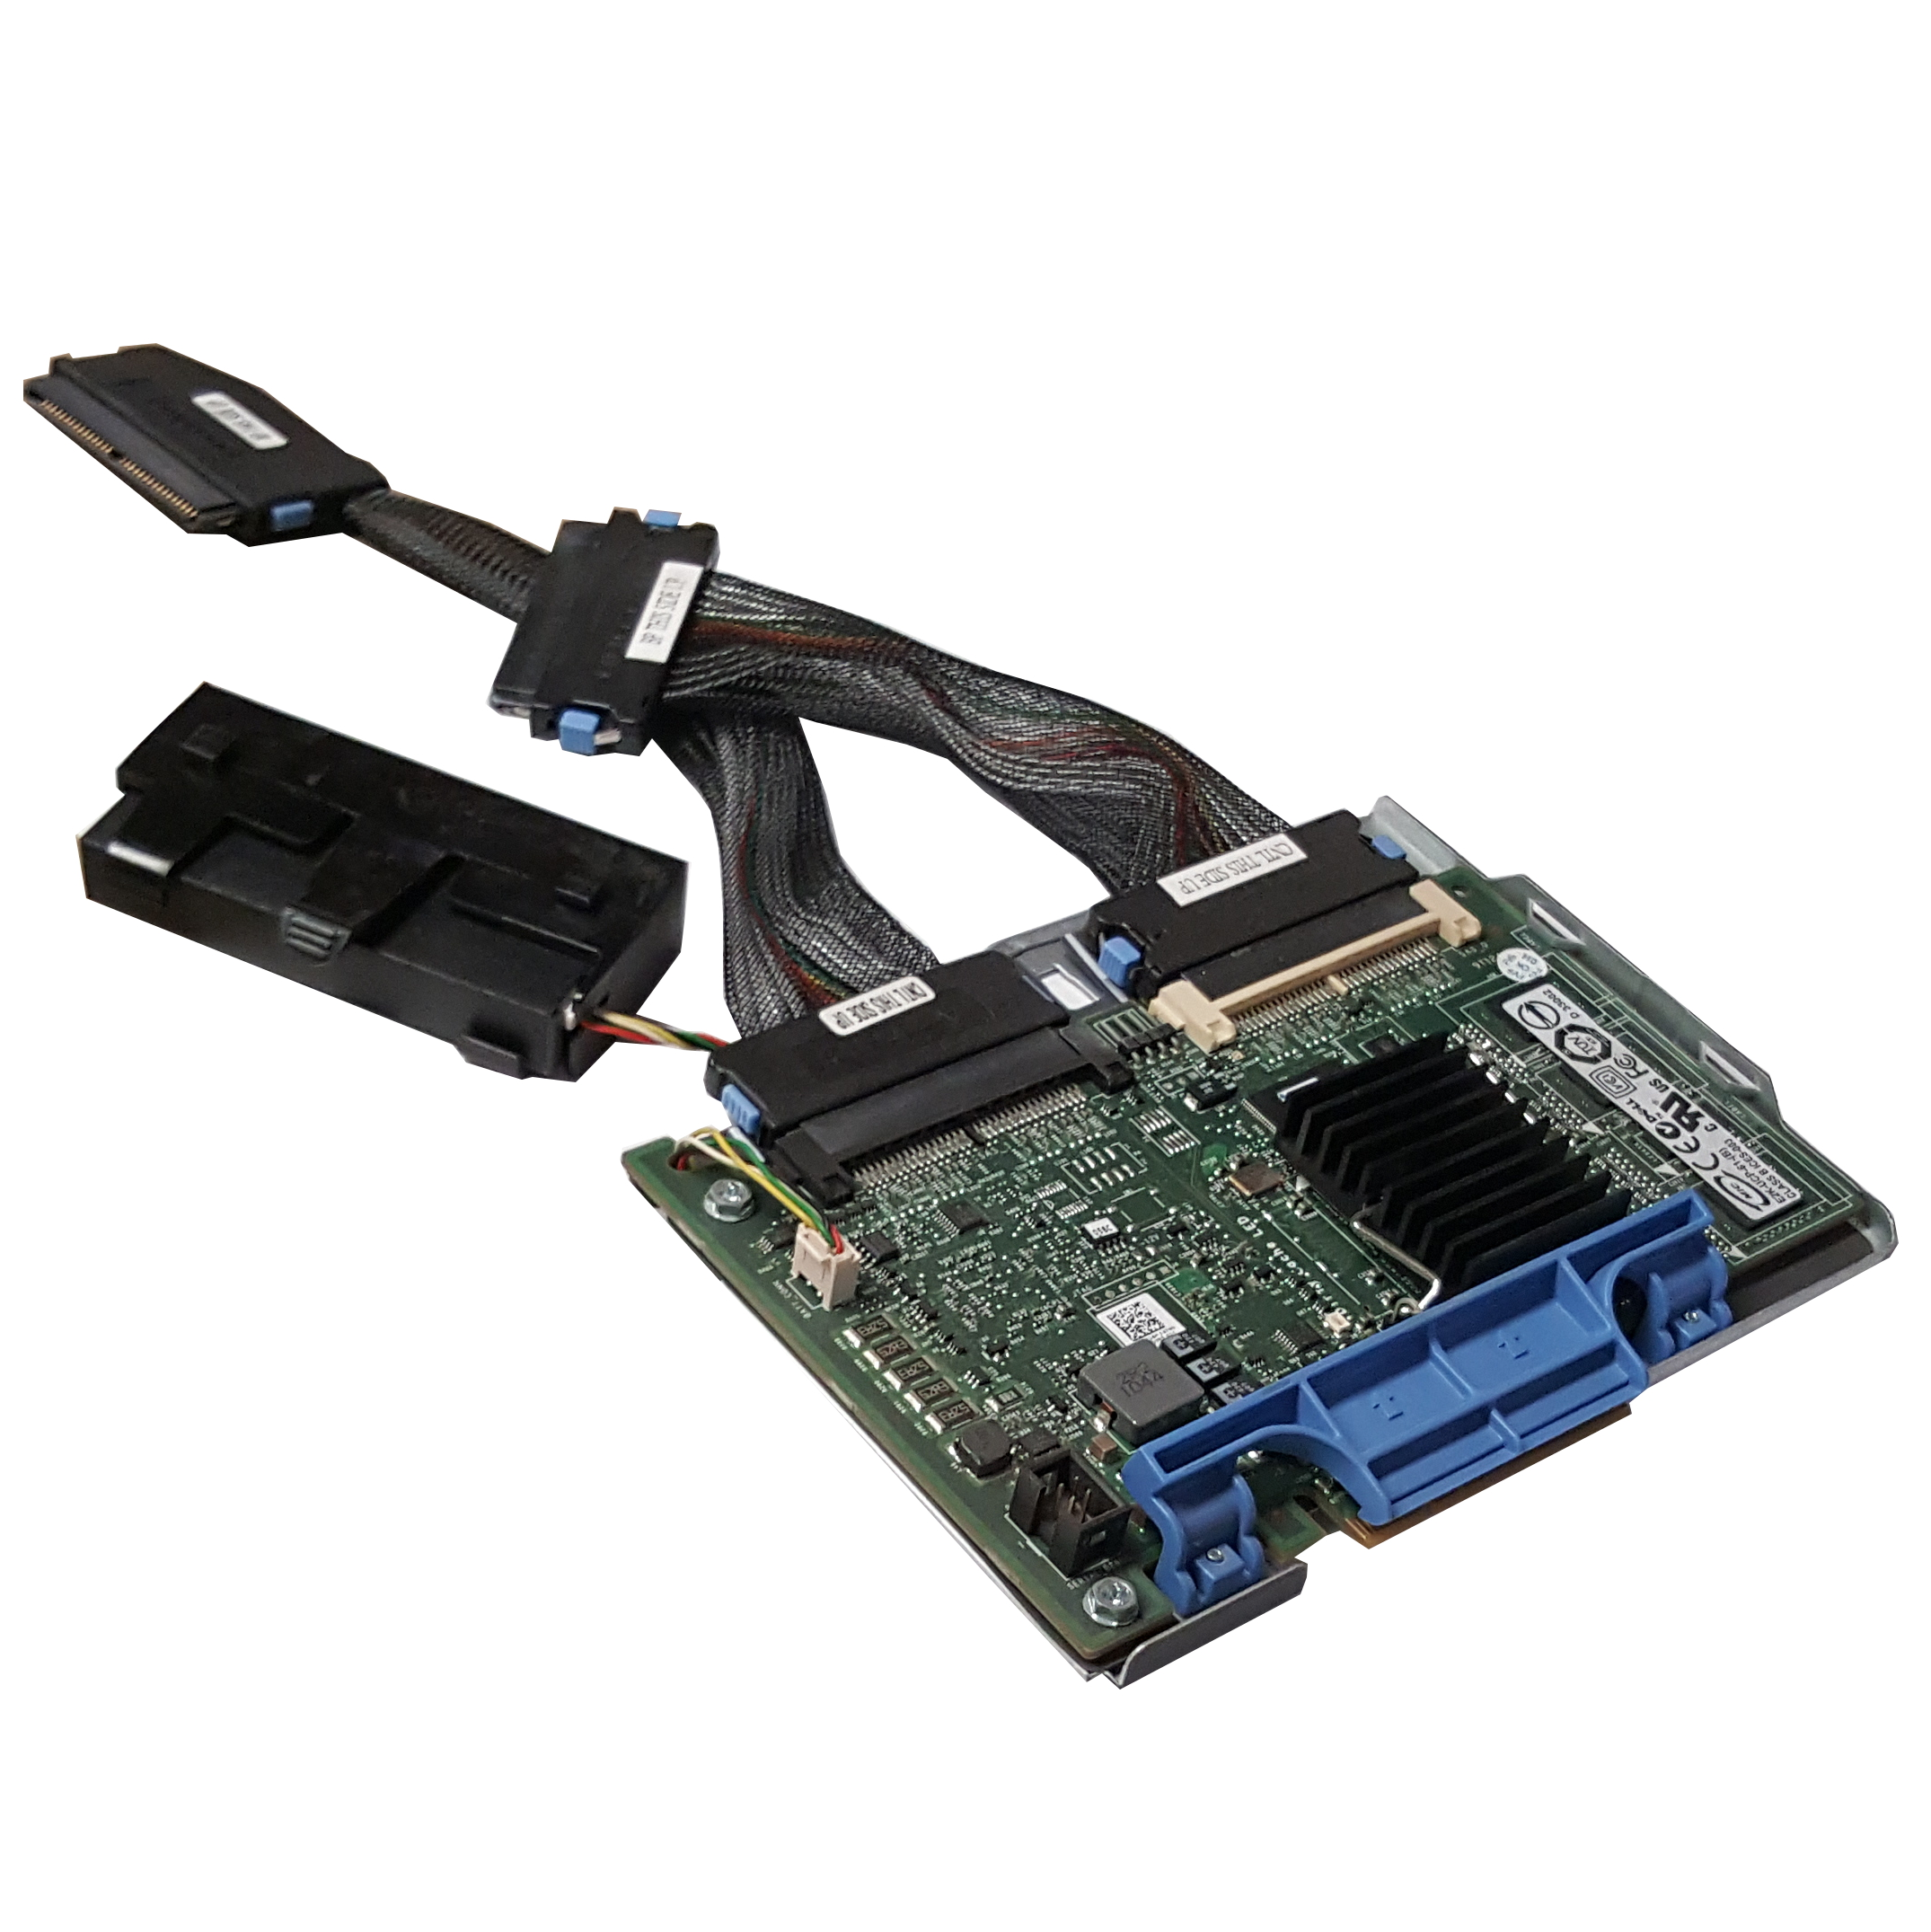 Dell H726F PERC 6i/R SAS PCIe RAID Controller Card w/ Cables & Battery Refurbished